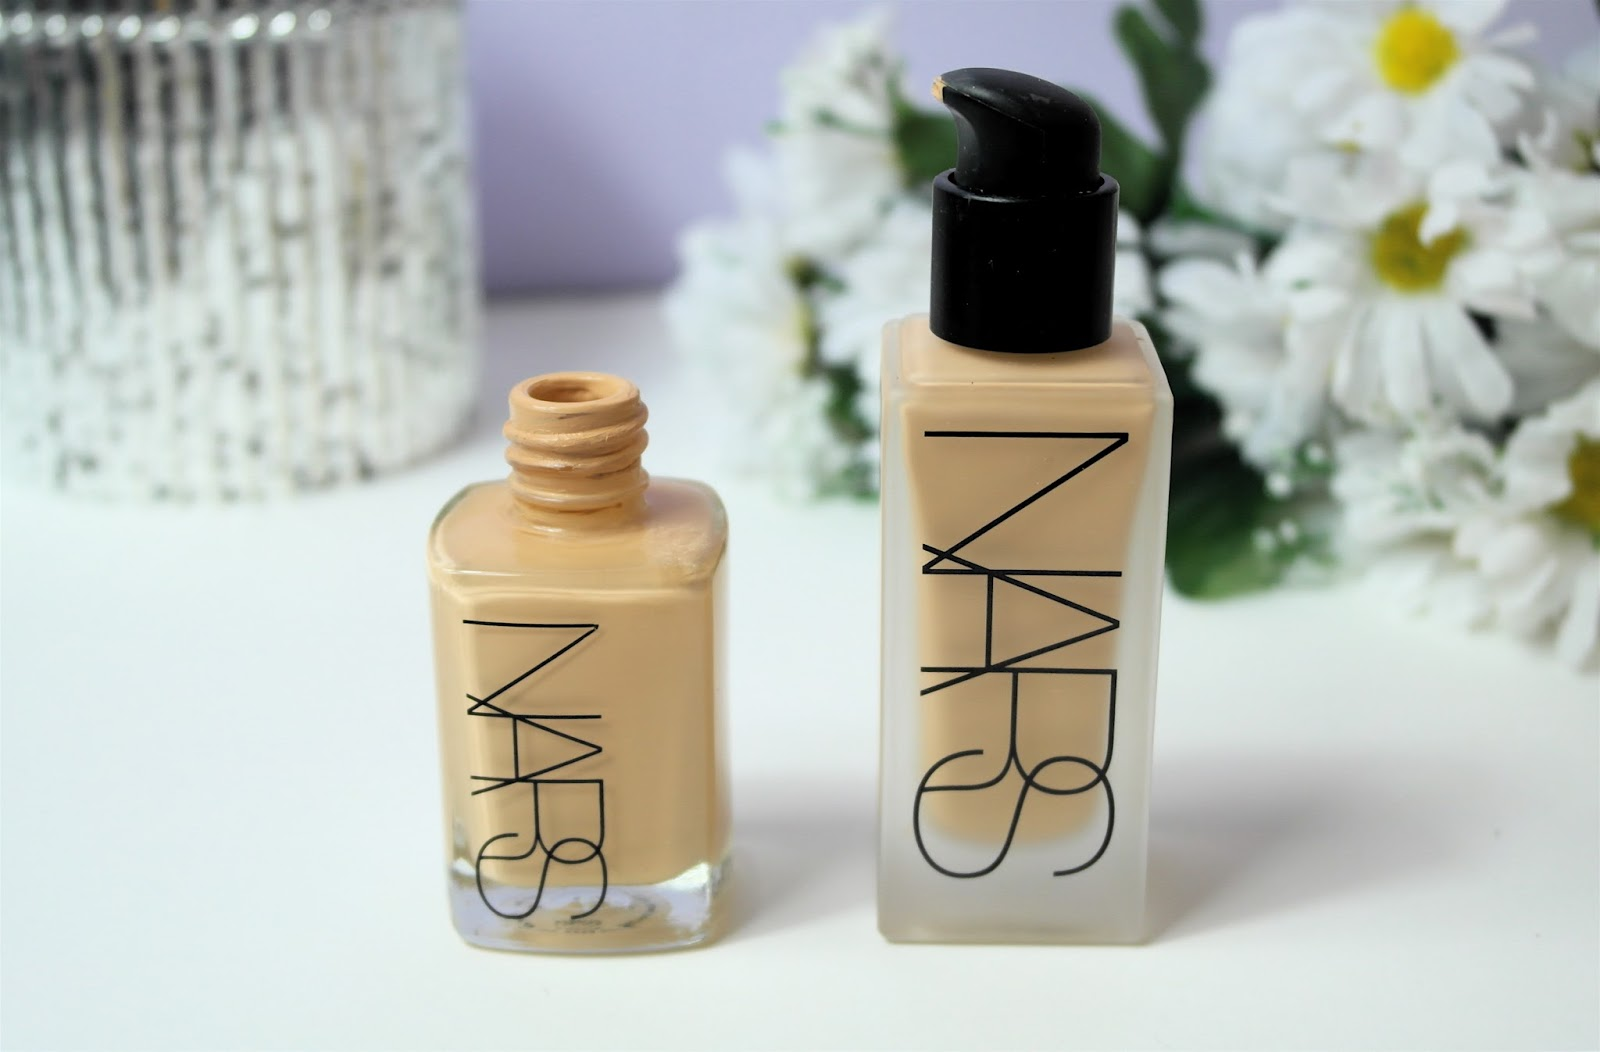 Nars all day luminous weightless and sheer glow comparison